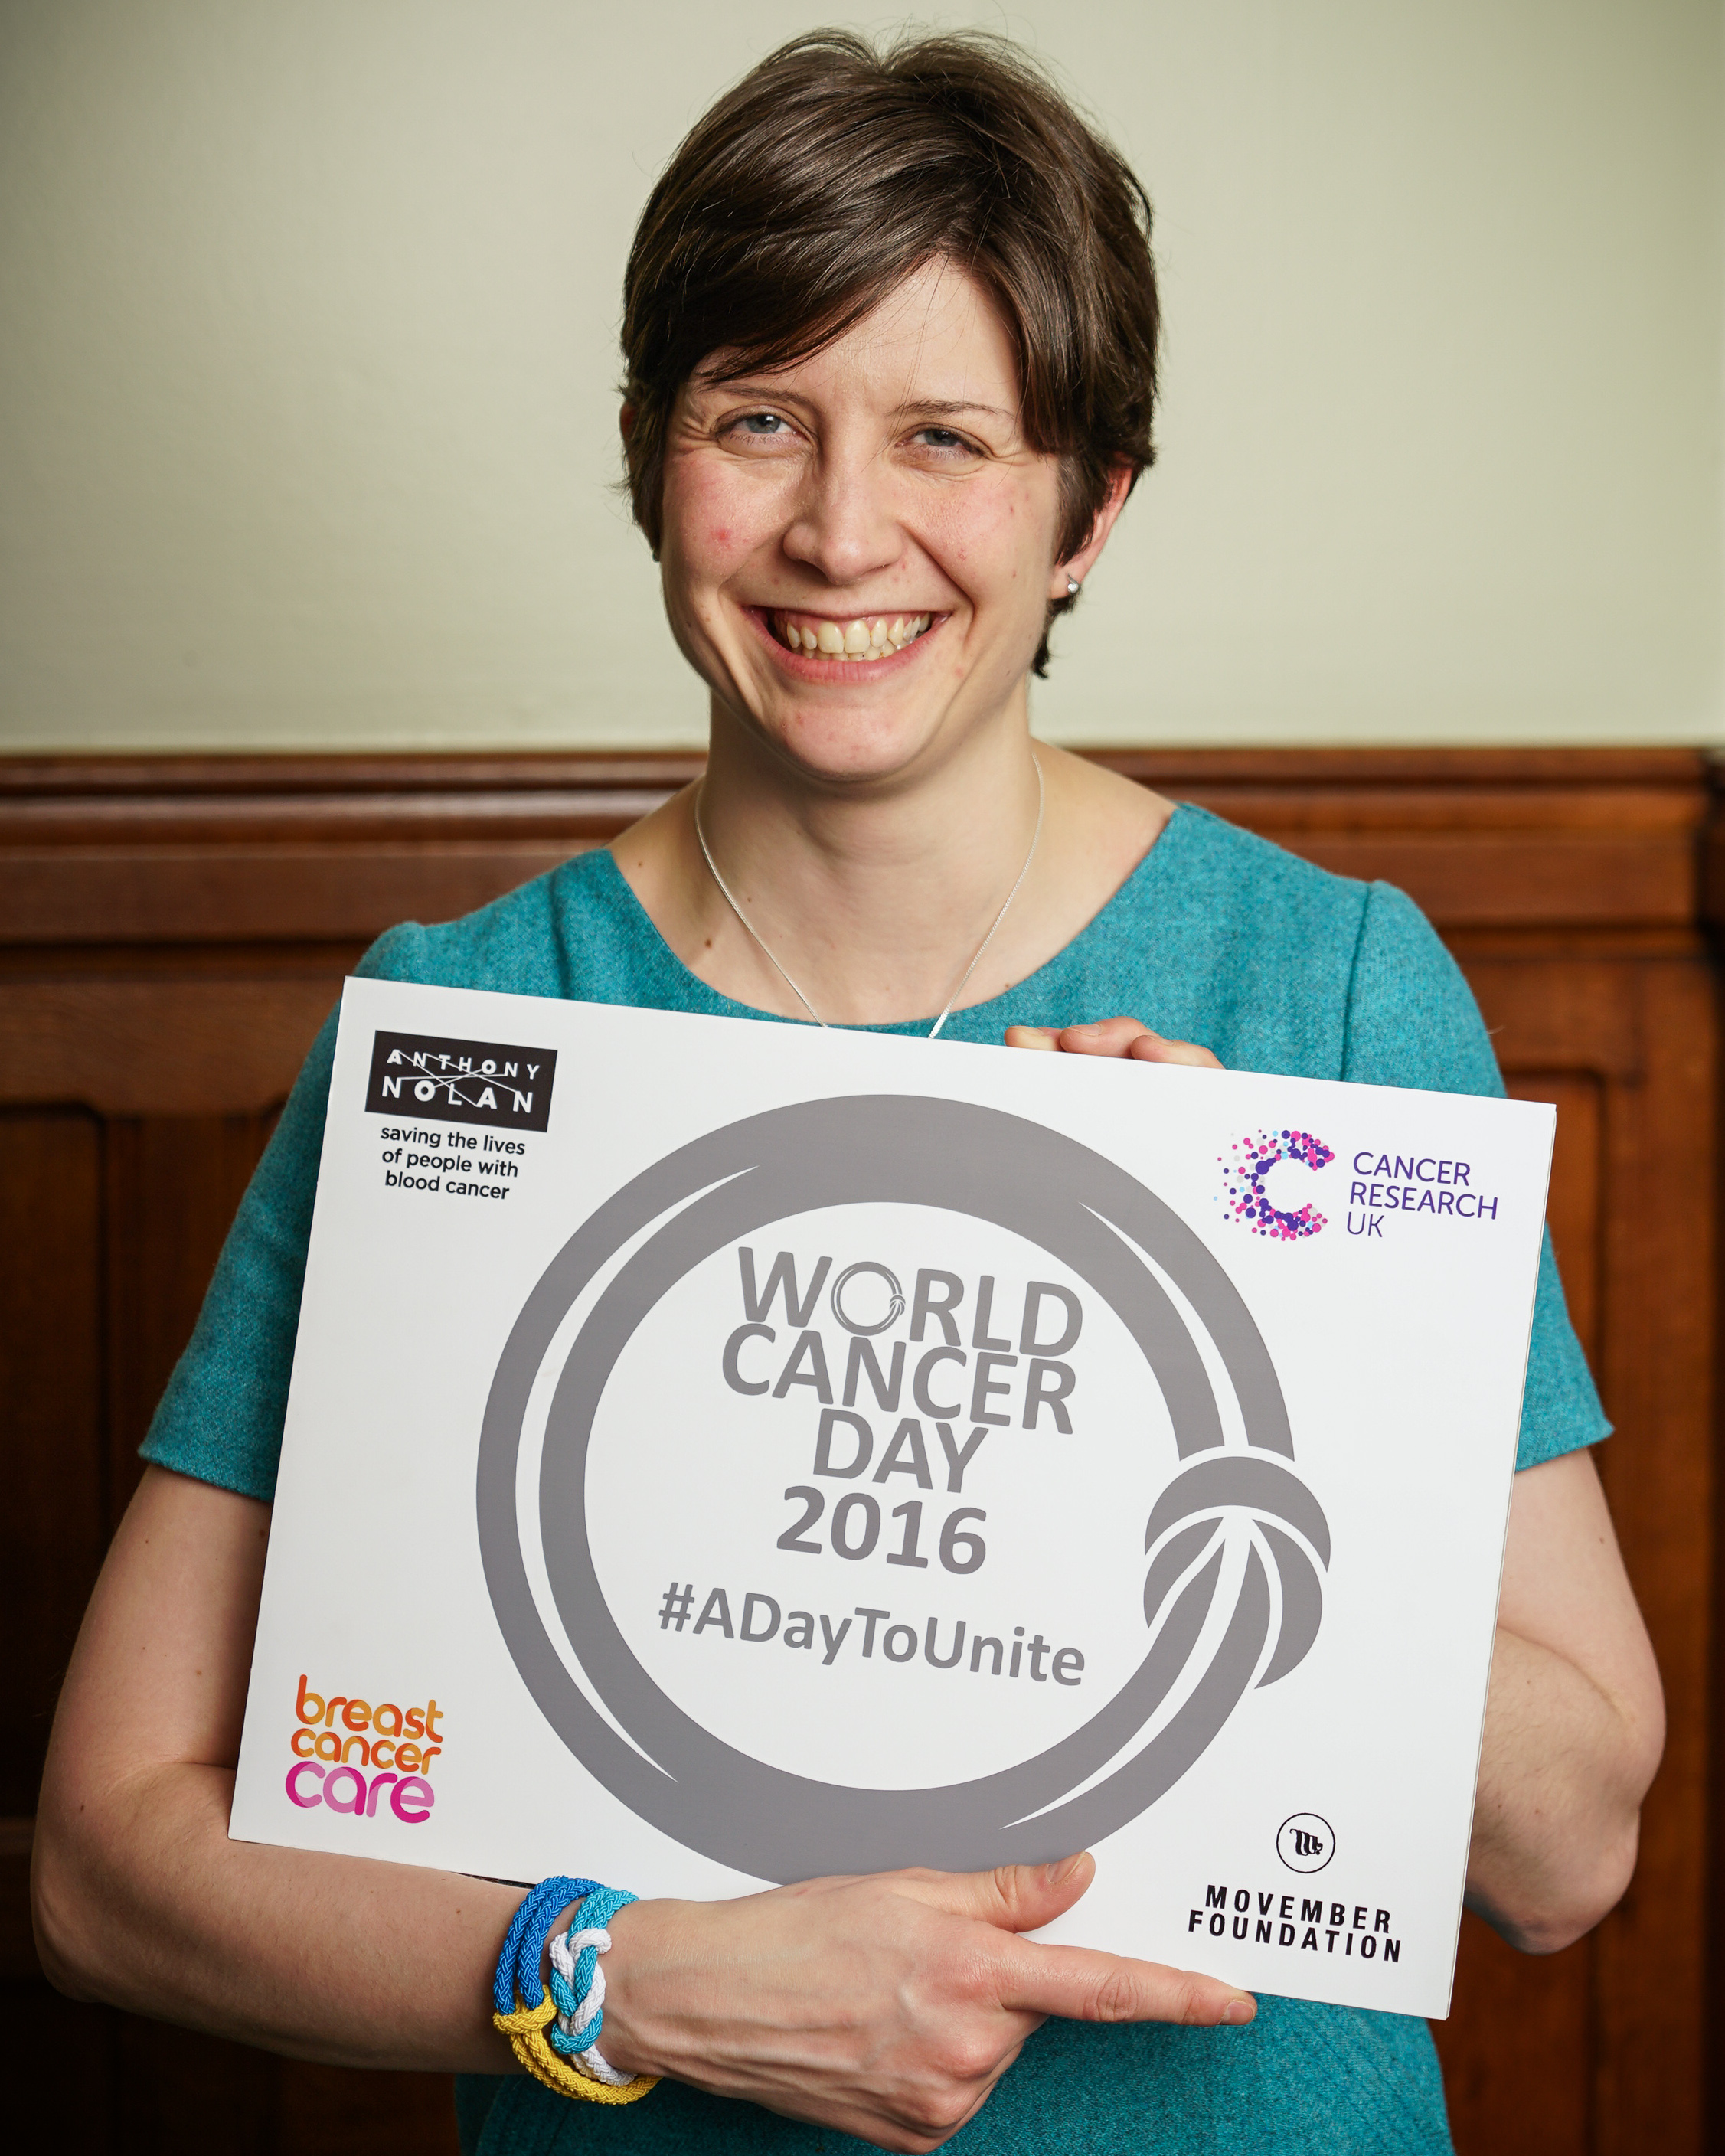 Alison Thewliss MP supports World Cancer Day 2016